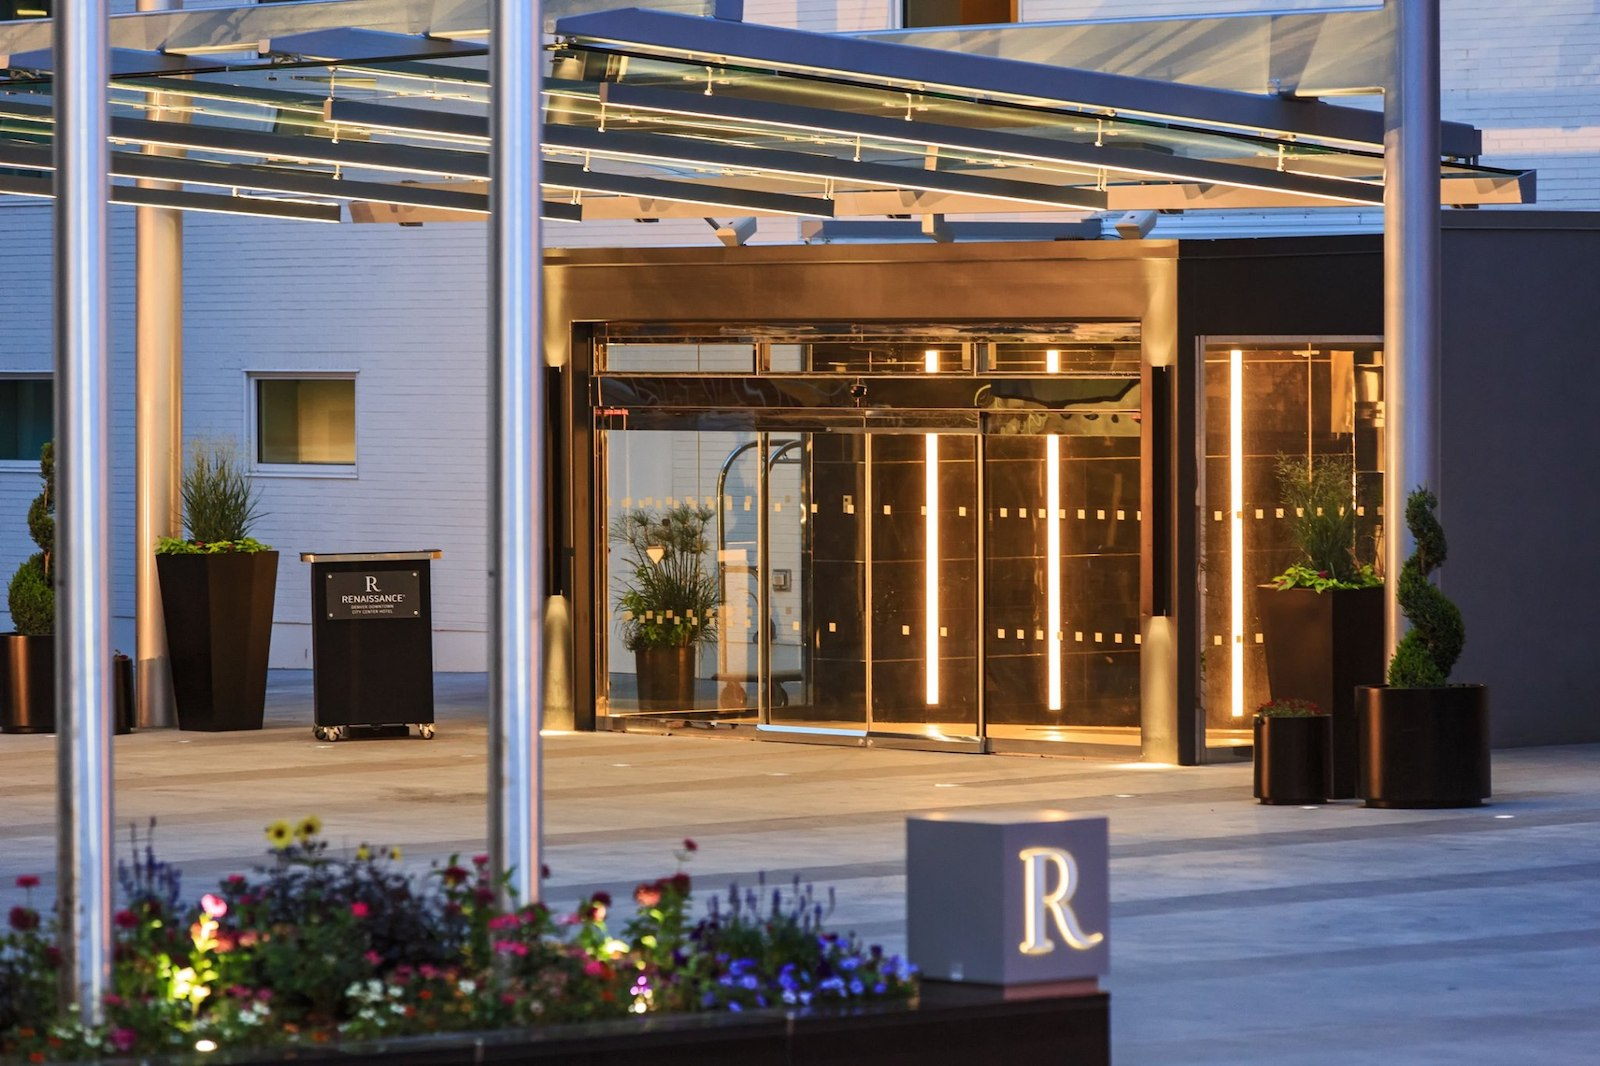 Image of the entrance at the Renaissance Denver Downtown City Center Hotel in Colorado